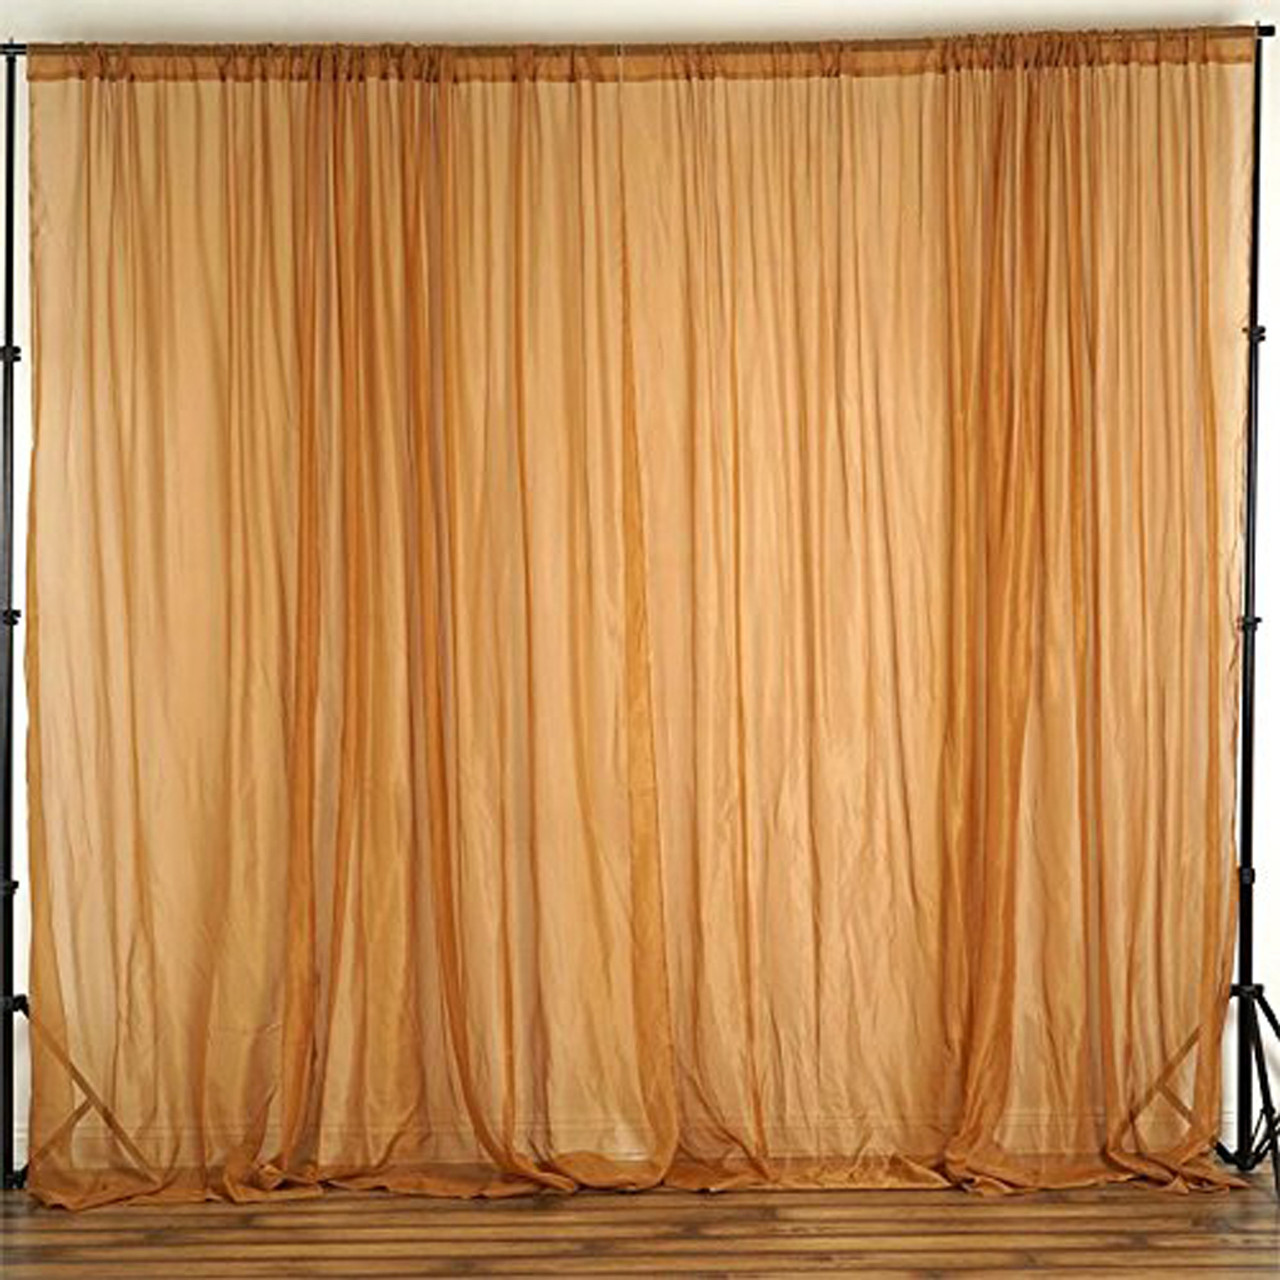 gold 120 wide 10ft wide sheer voile drape panels select from 6ft to 50ft length